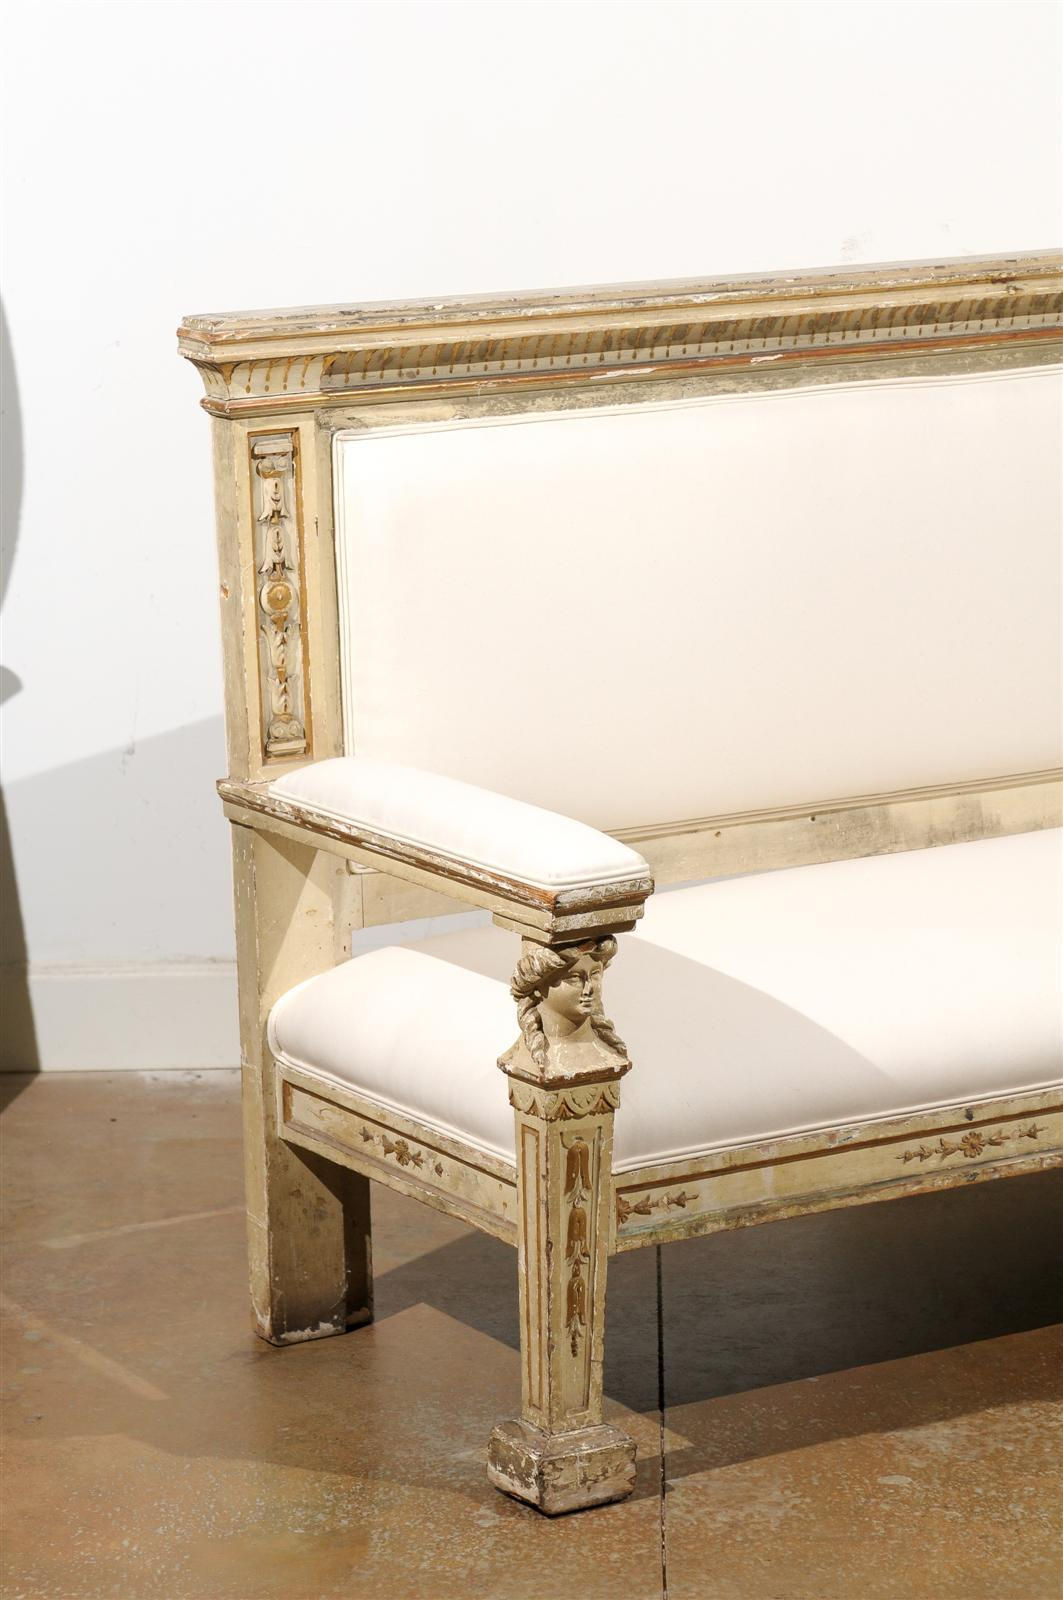 Neoclassical 1820s, Tuscan Upholstered Wooden Bench with Classical Figures For Sale 1